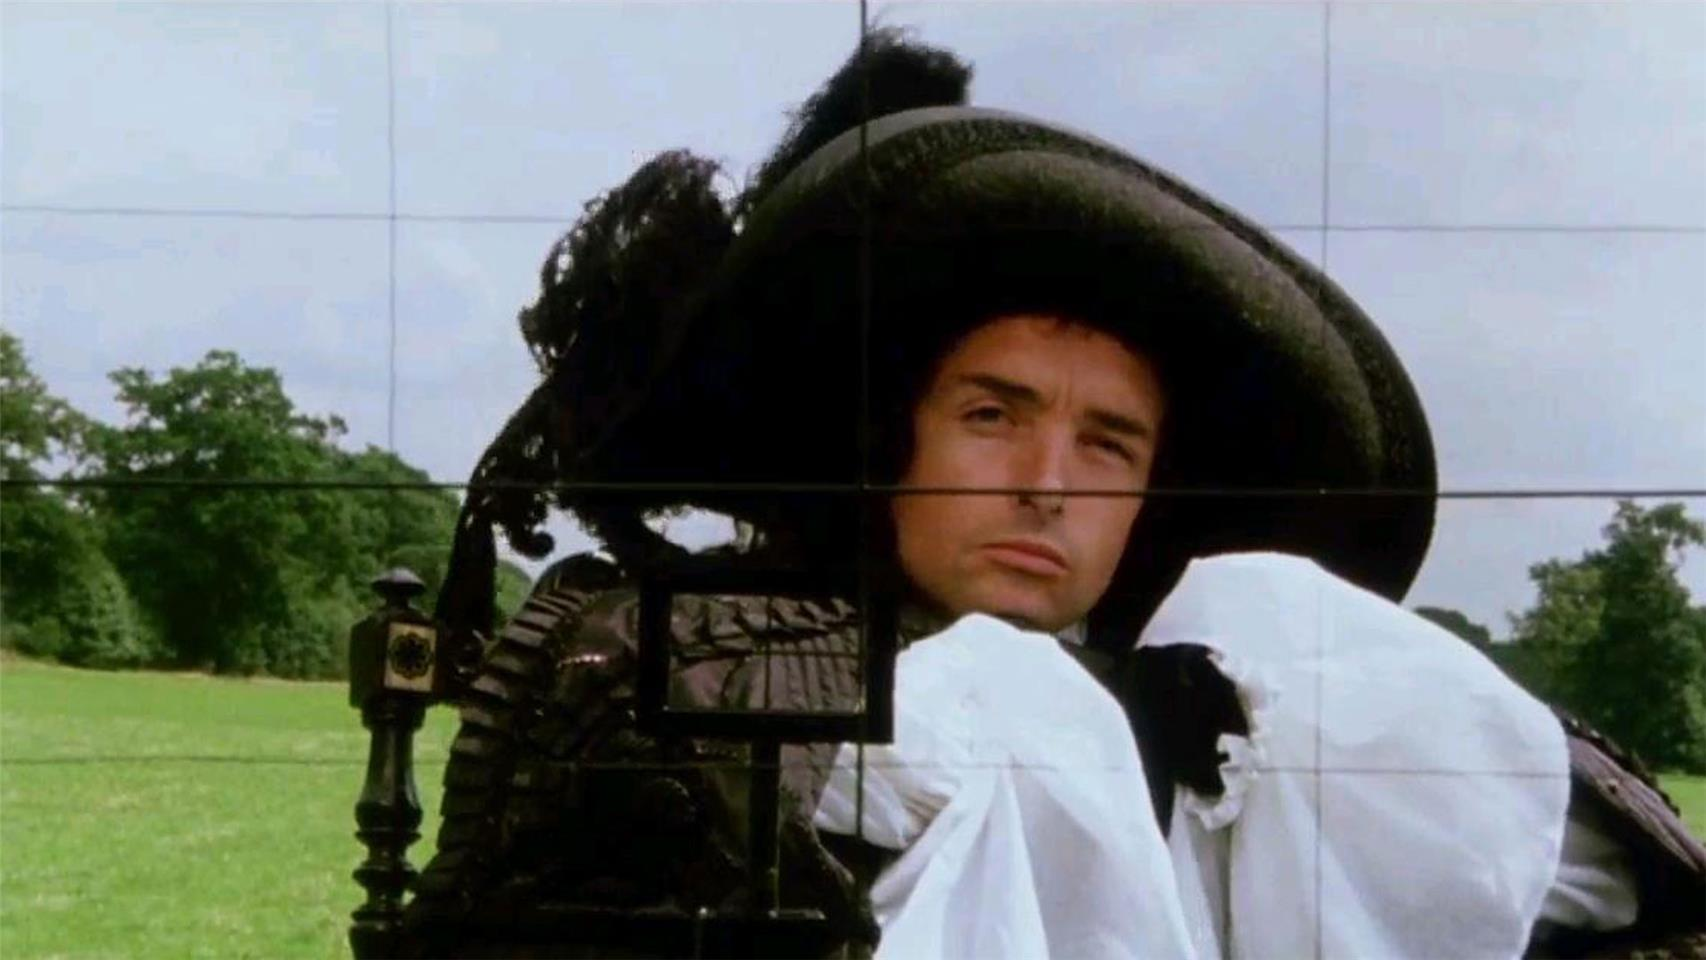 The Draughtsman's Contracat by Peter Greenaway